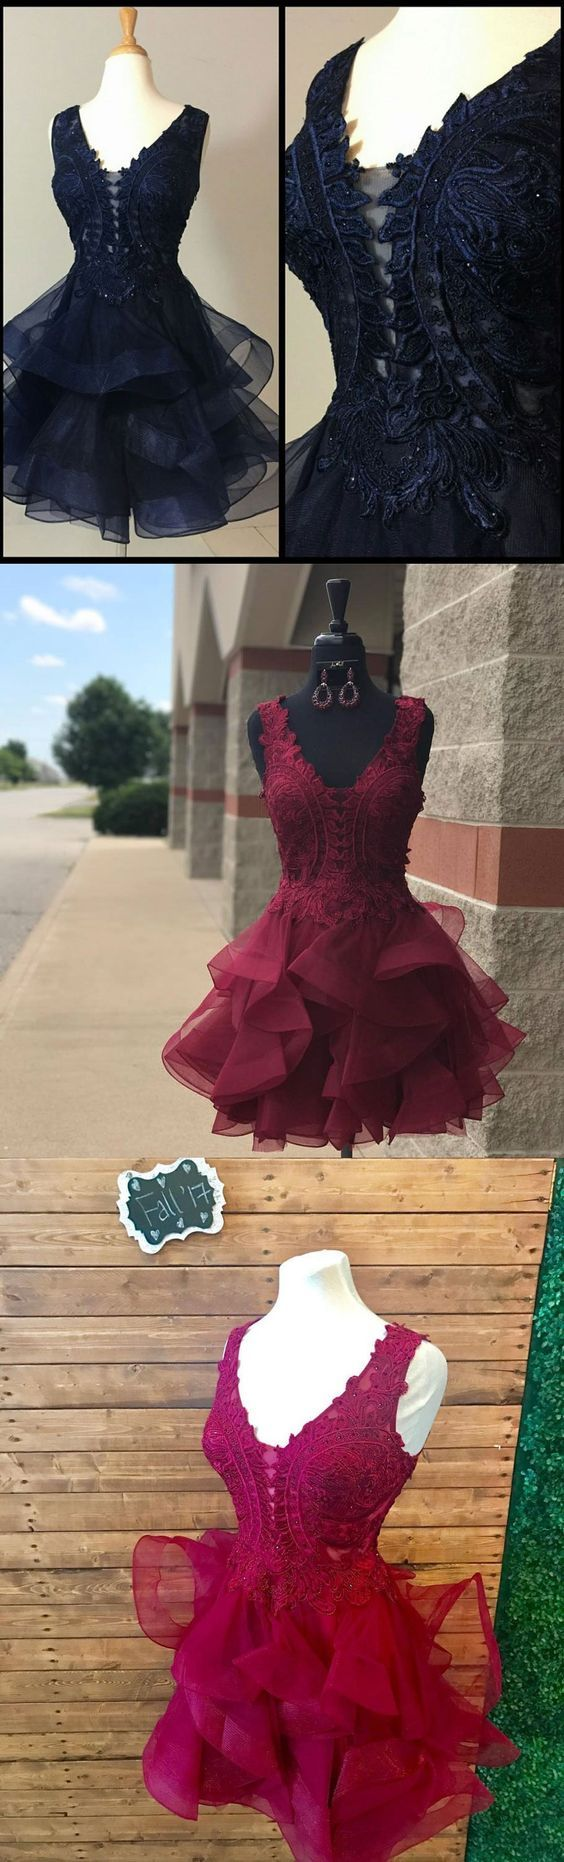 Charming lace short prom dress,short prom dresses,cheap homecoming dresses,graduation dresses,sweet 16 dress,90304